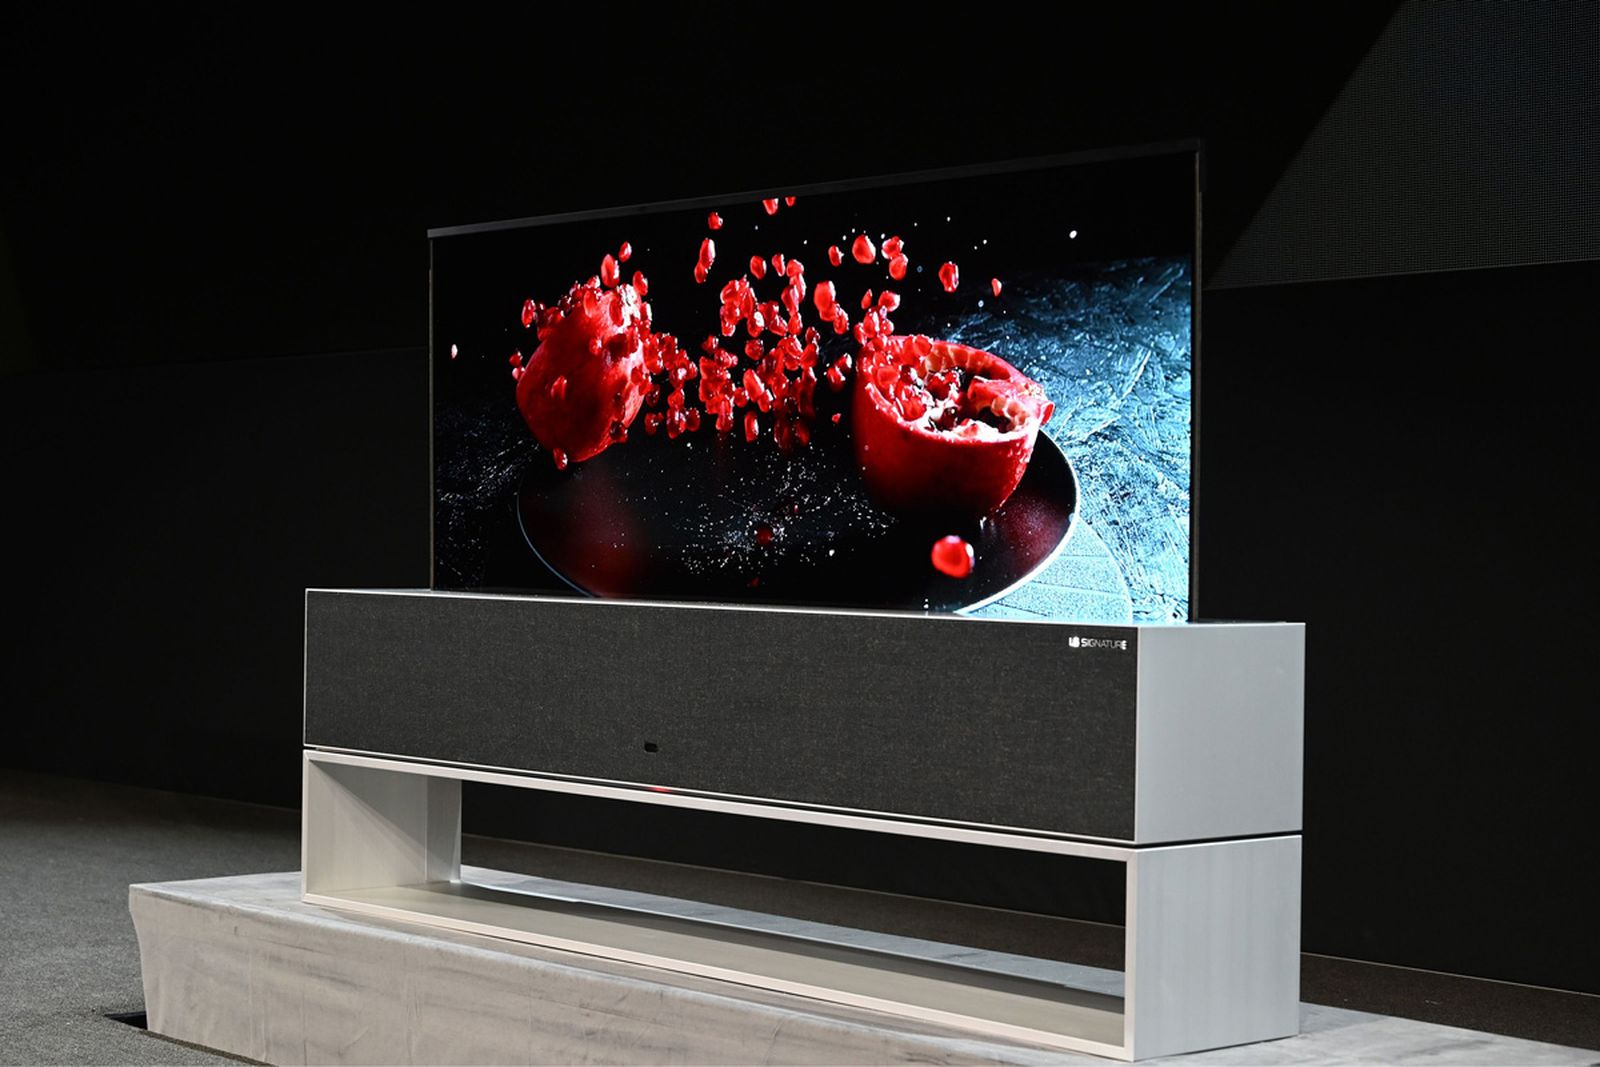 lg rollable oled tv ces2019